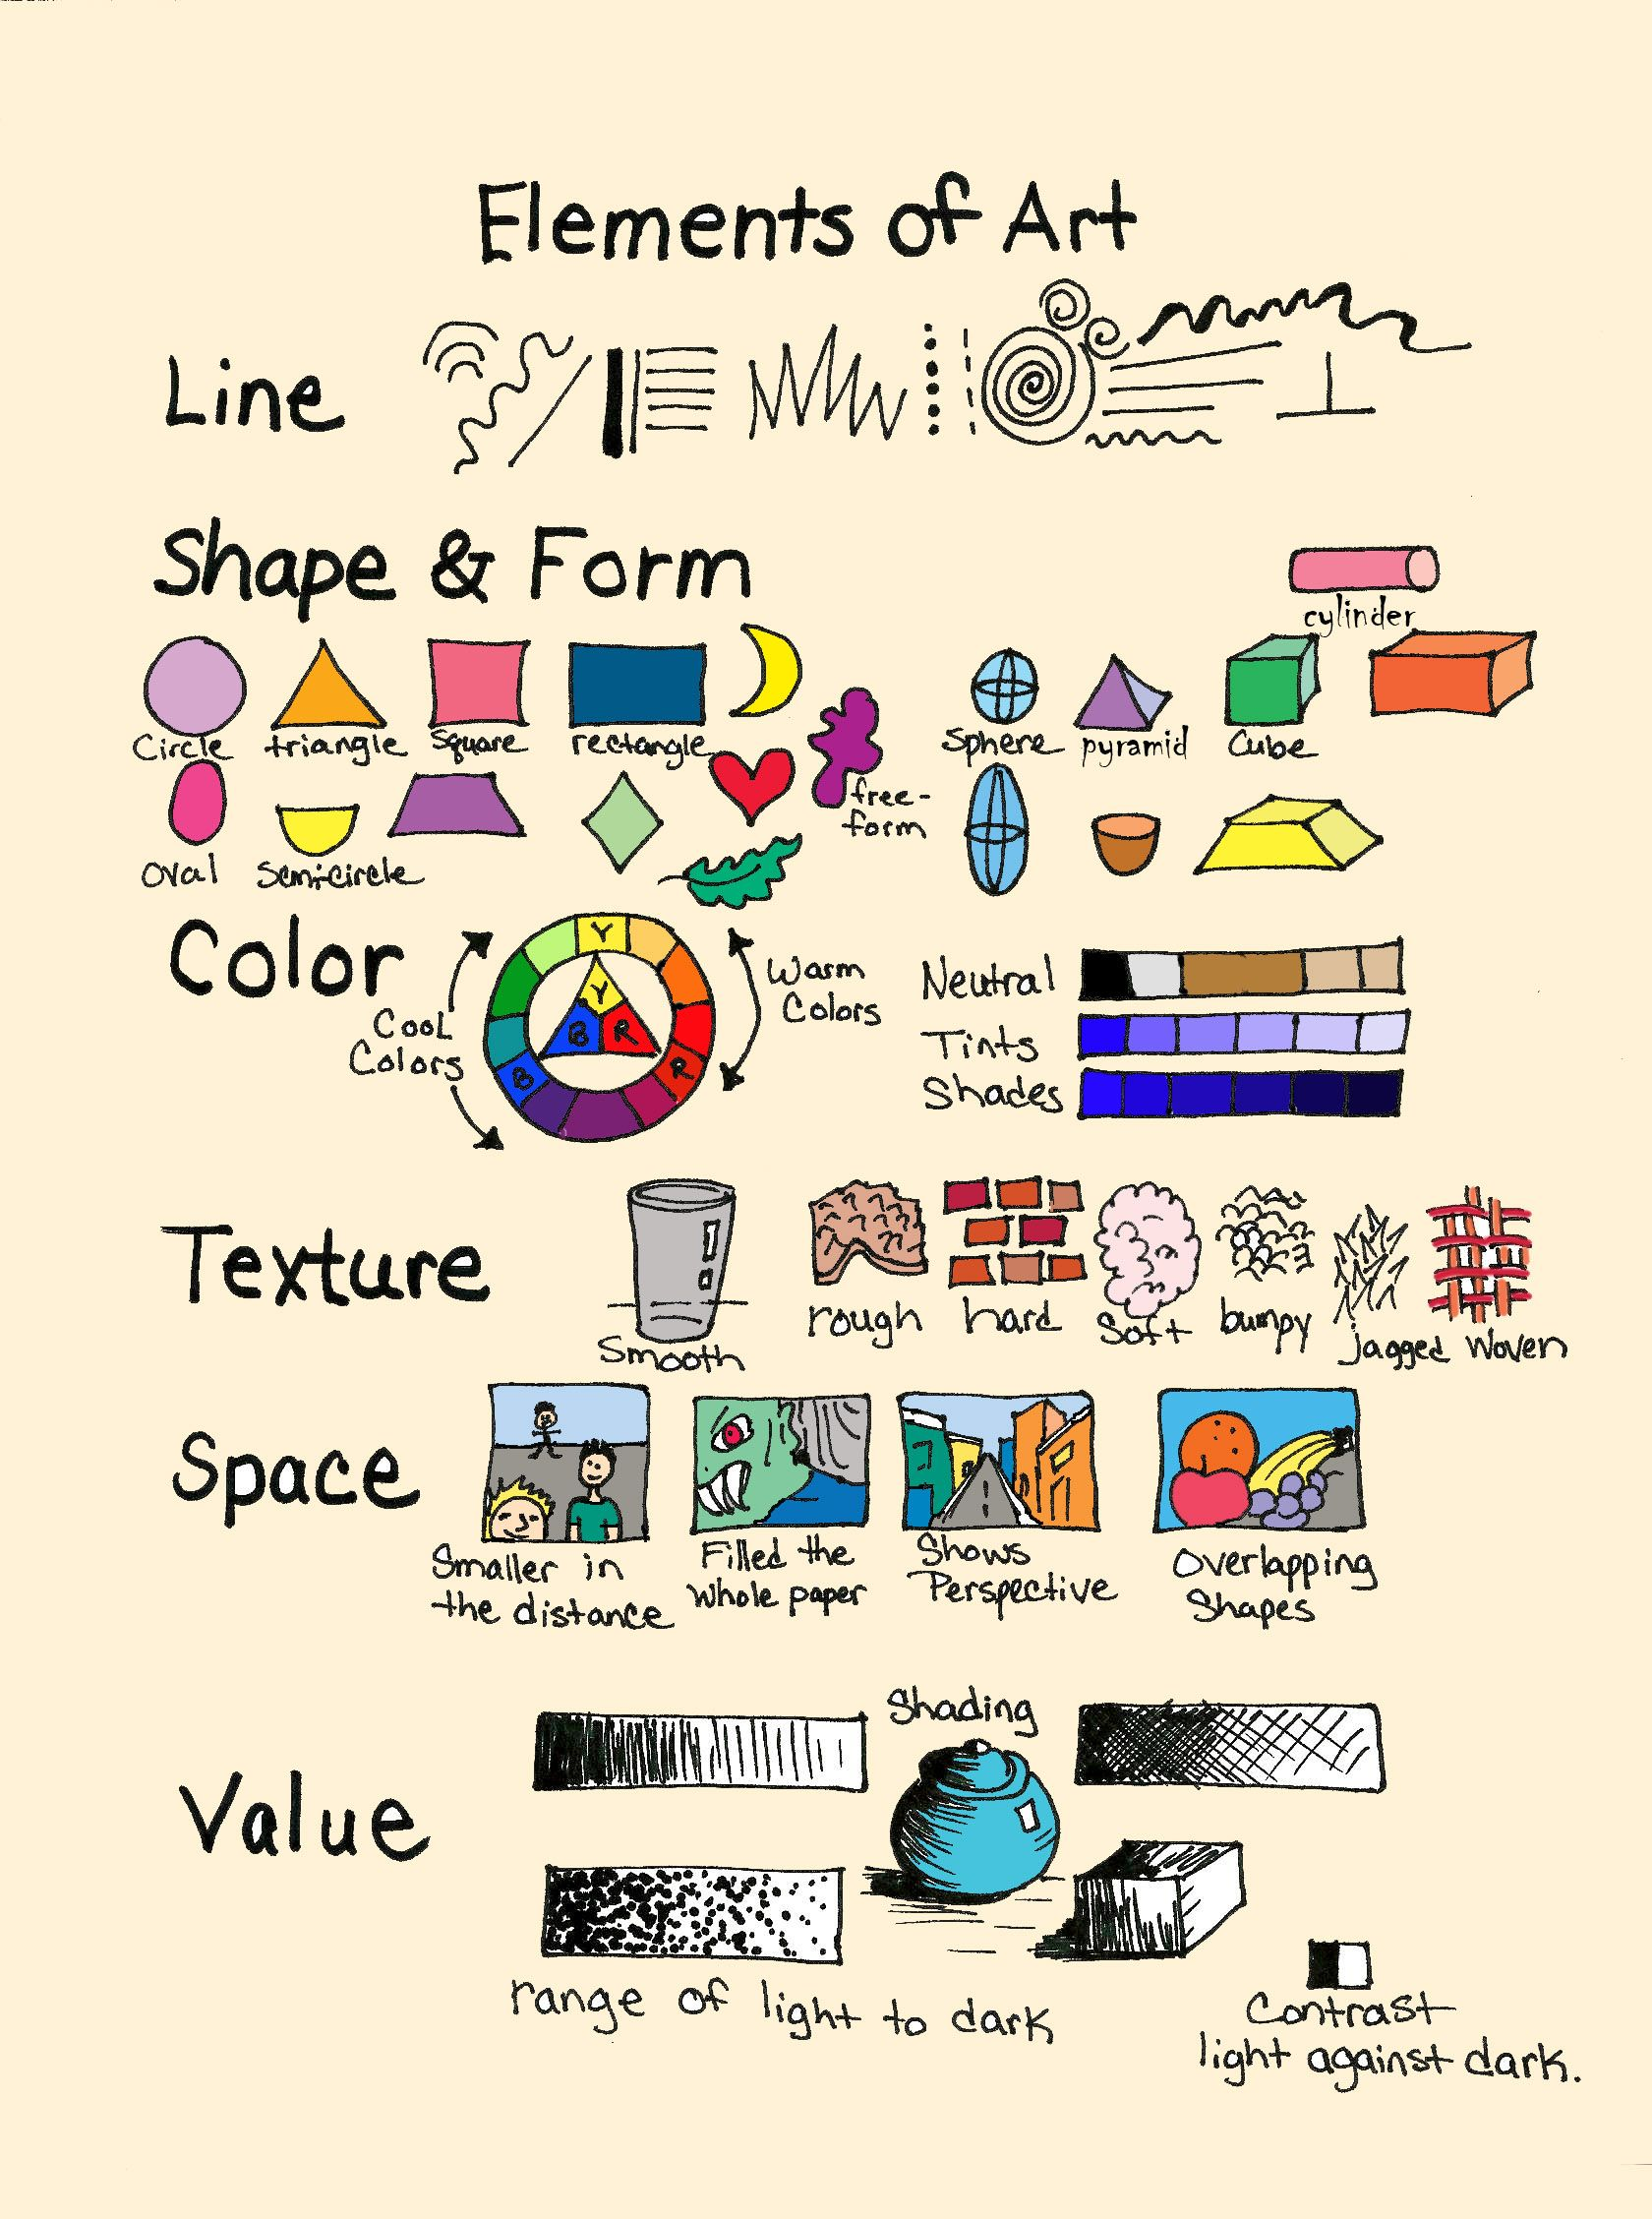 Name The Elements Of Art : Elements of art and how pinterest lessons